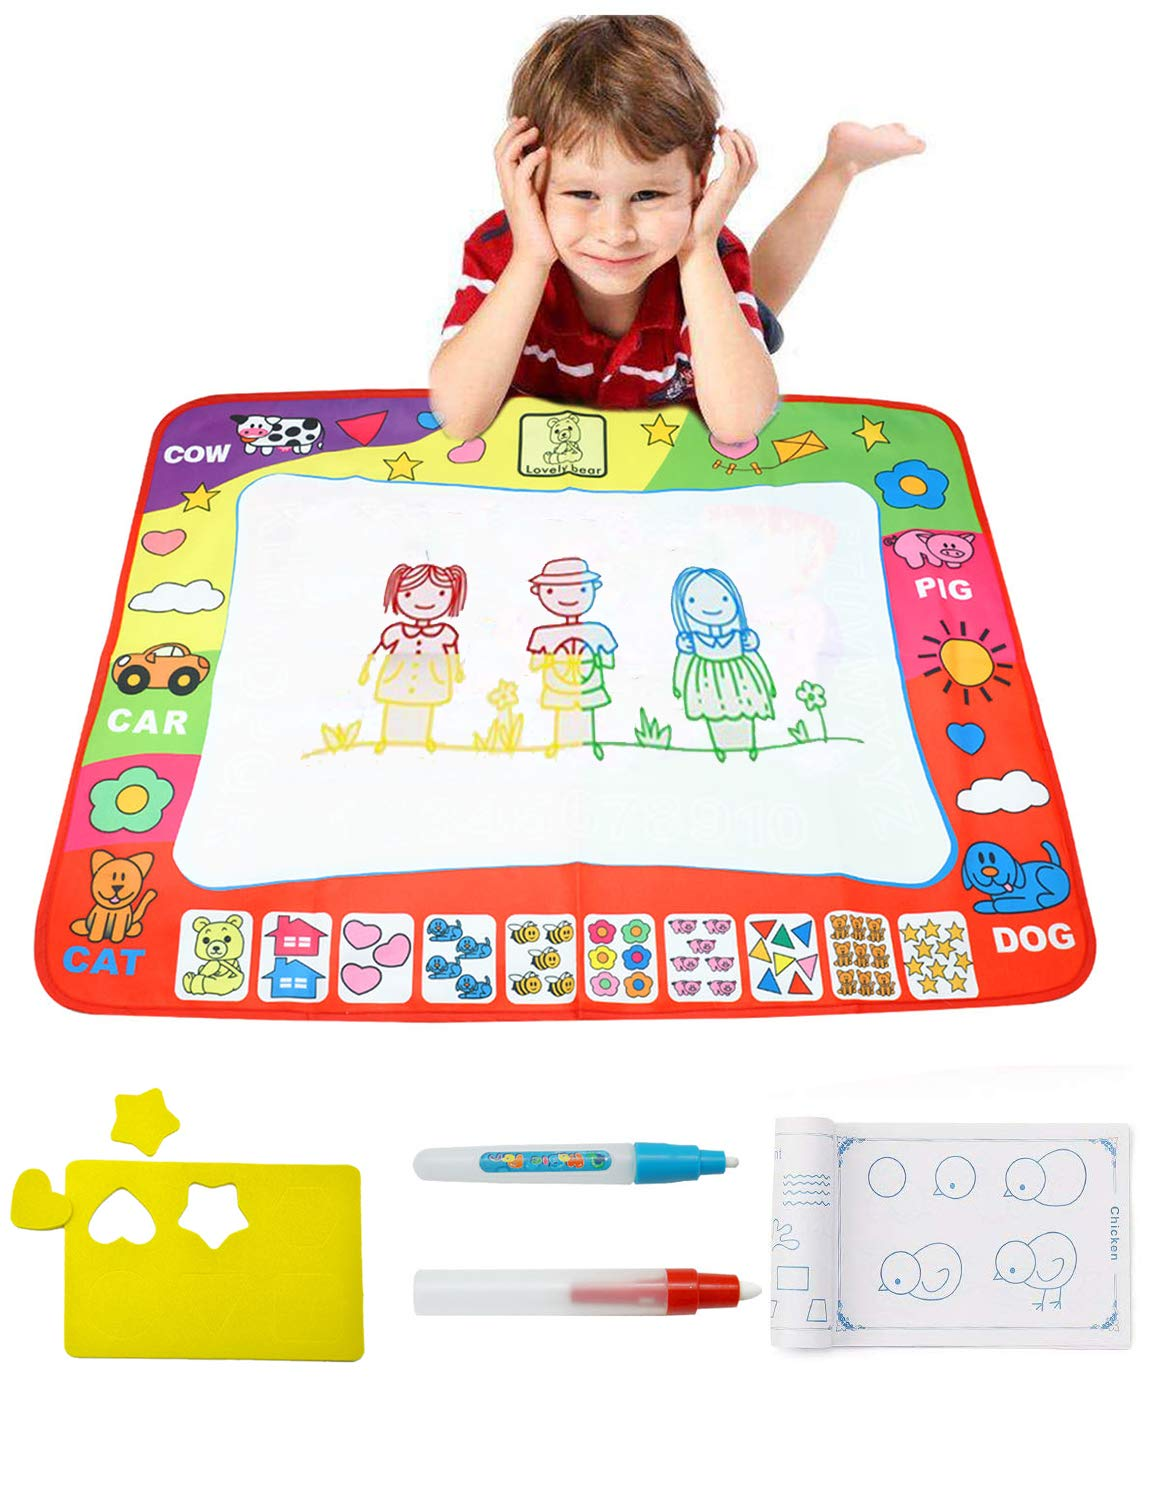 Miracliy Doodle Drawing Mat 4 Color Children Water Drawing Mat Board with 2 Magic Pens for Children Baby Toddlers Kids Boys Girls, 31.5 X 23.6 Inches